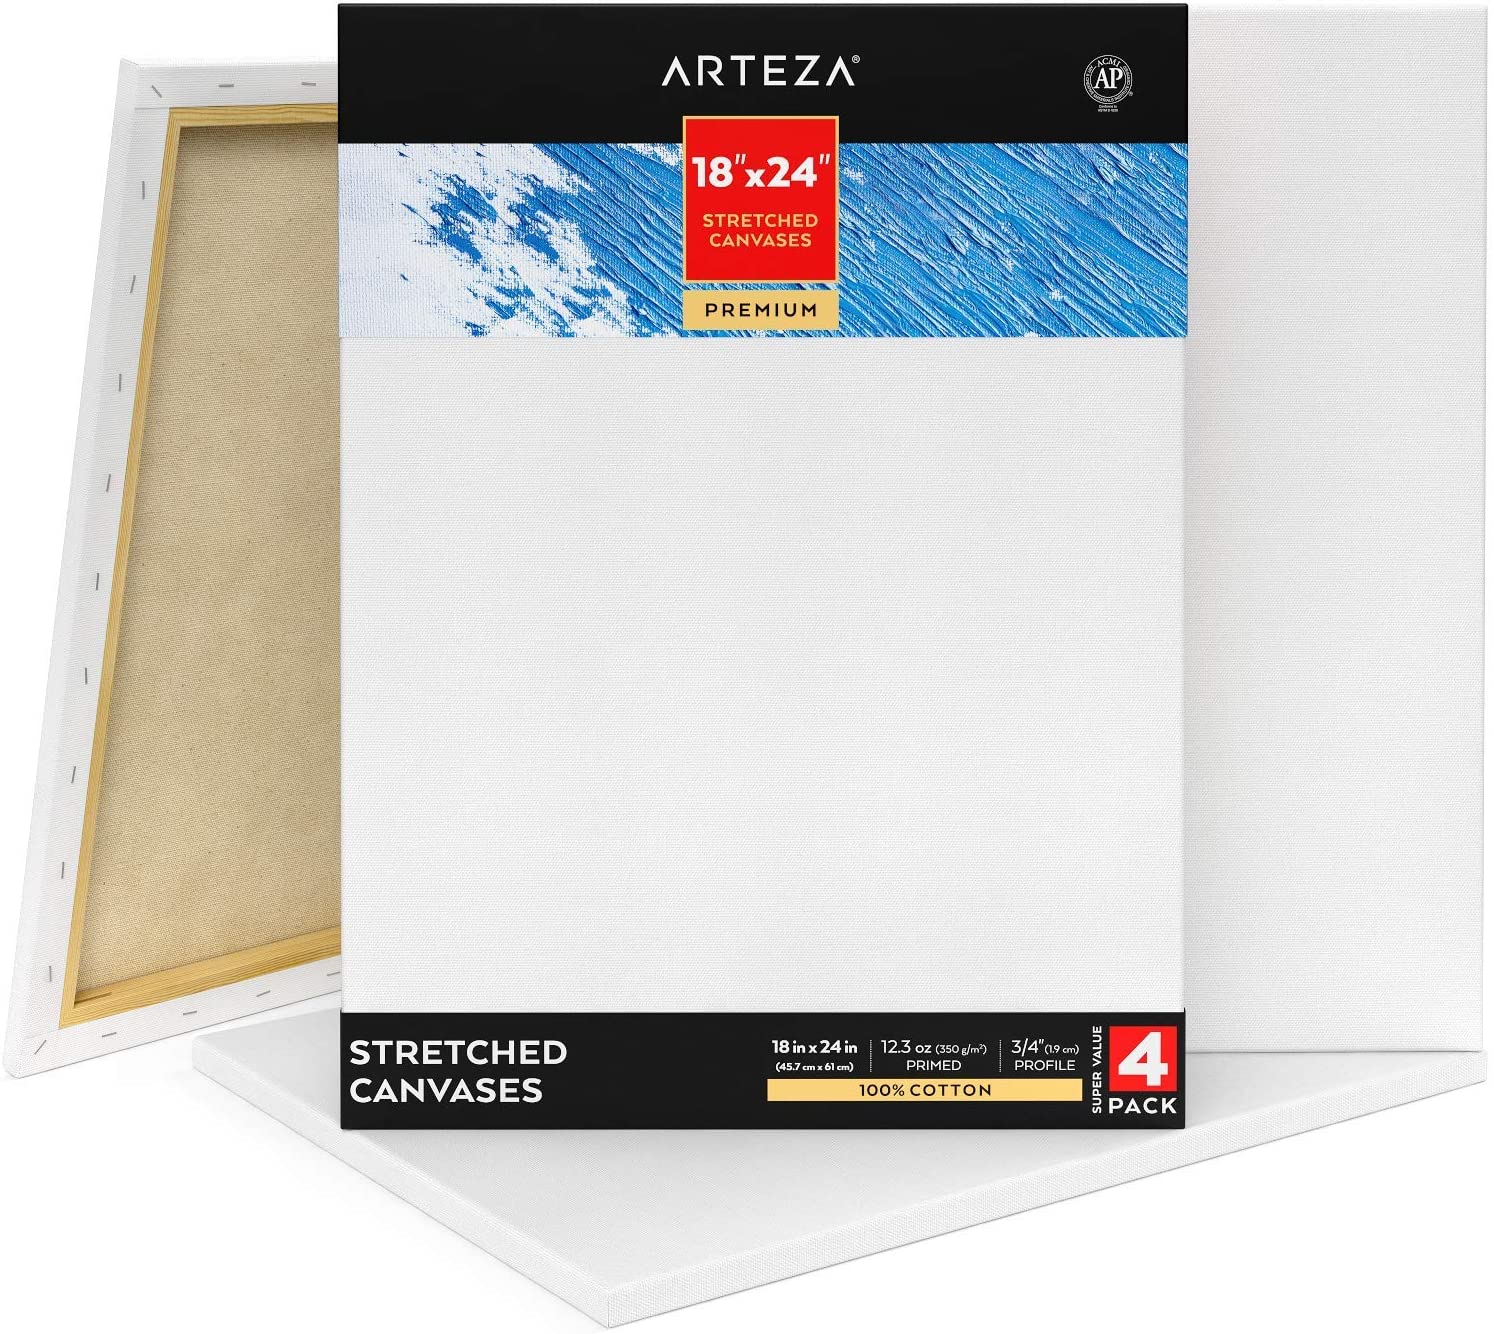 Art 20 x 16 Staple Back Stretched Canvas  Anya Art Abstract Acrylic With Metallic  Pour Painting